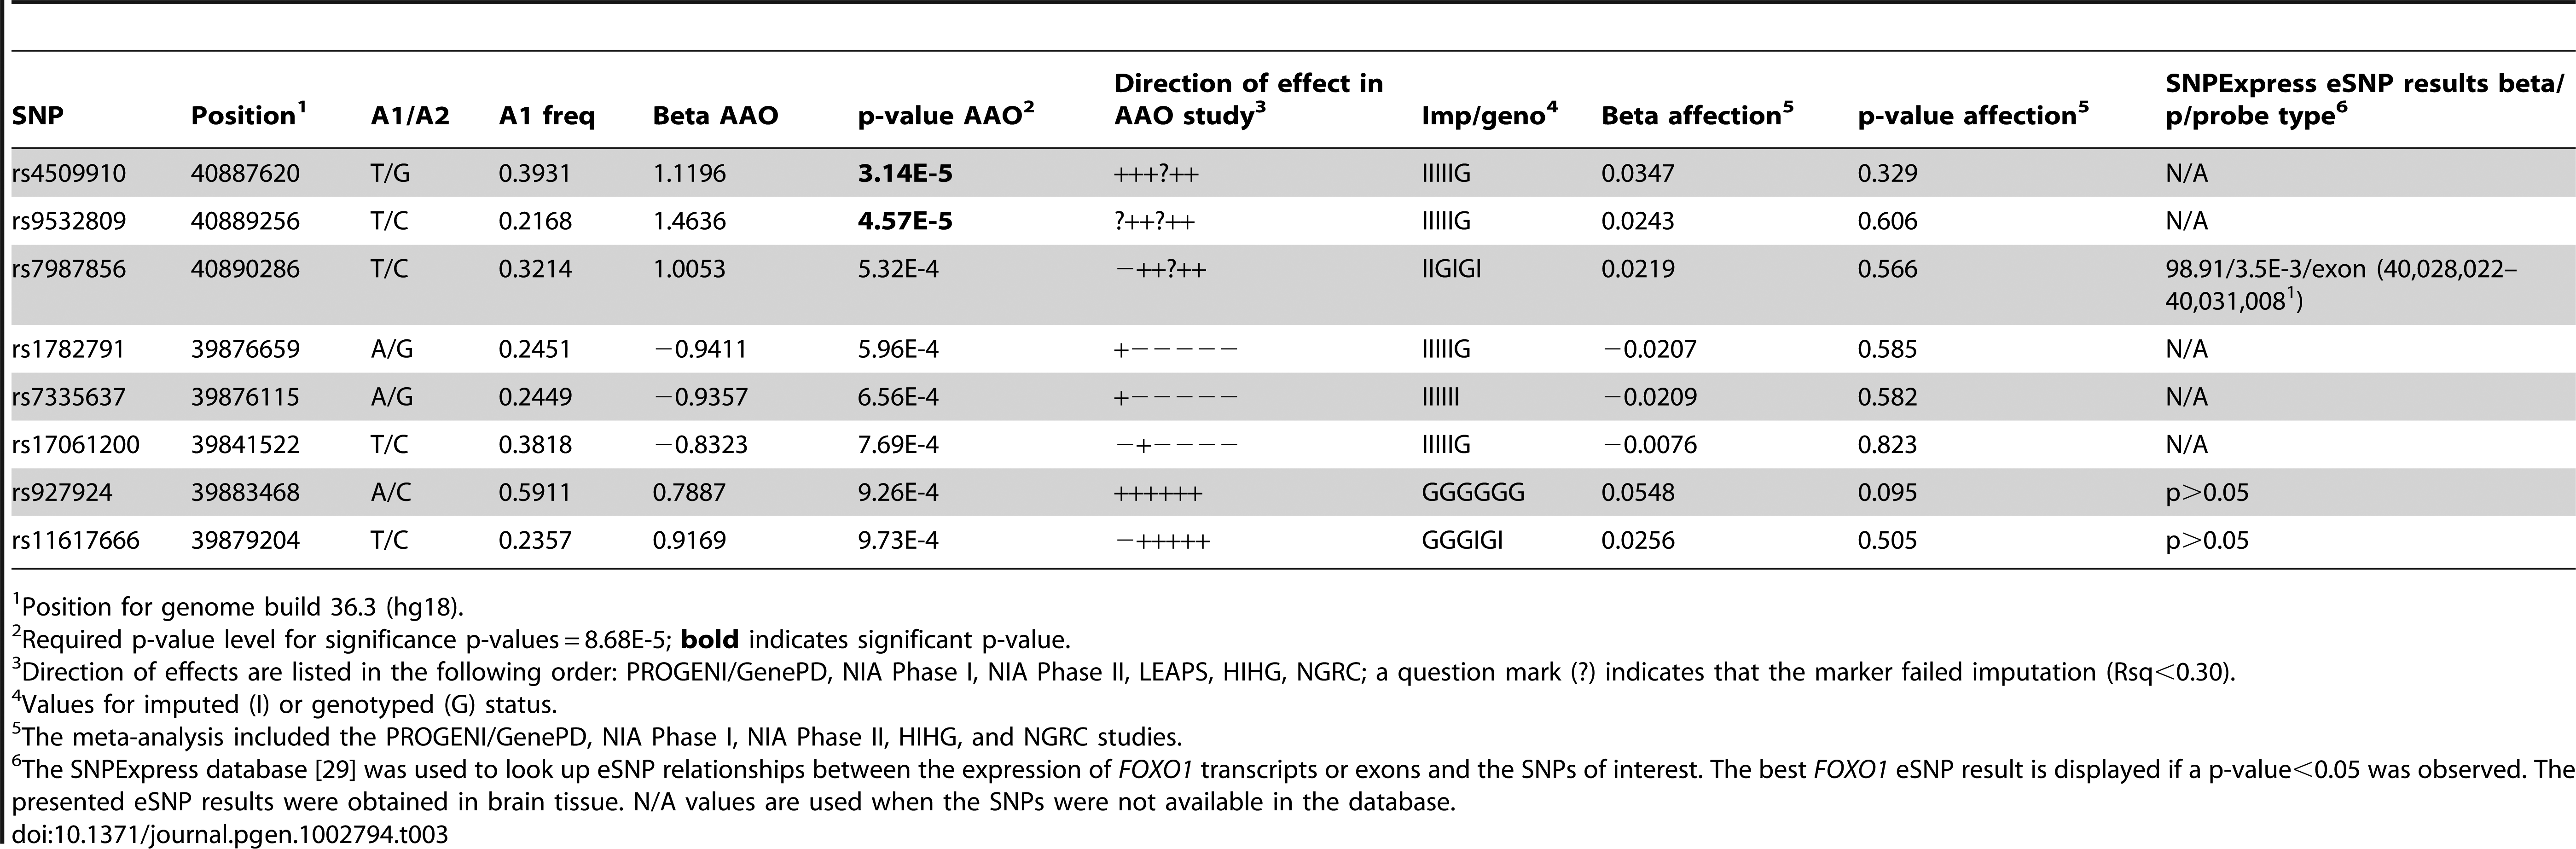 Top age at onset (AAO) meta-analysis results for the <i>FOXO1</i> region.